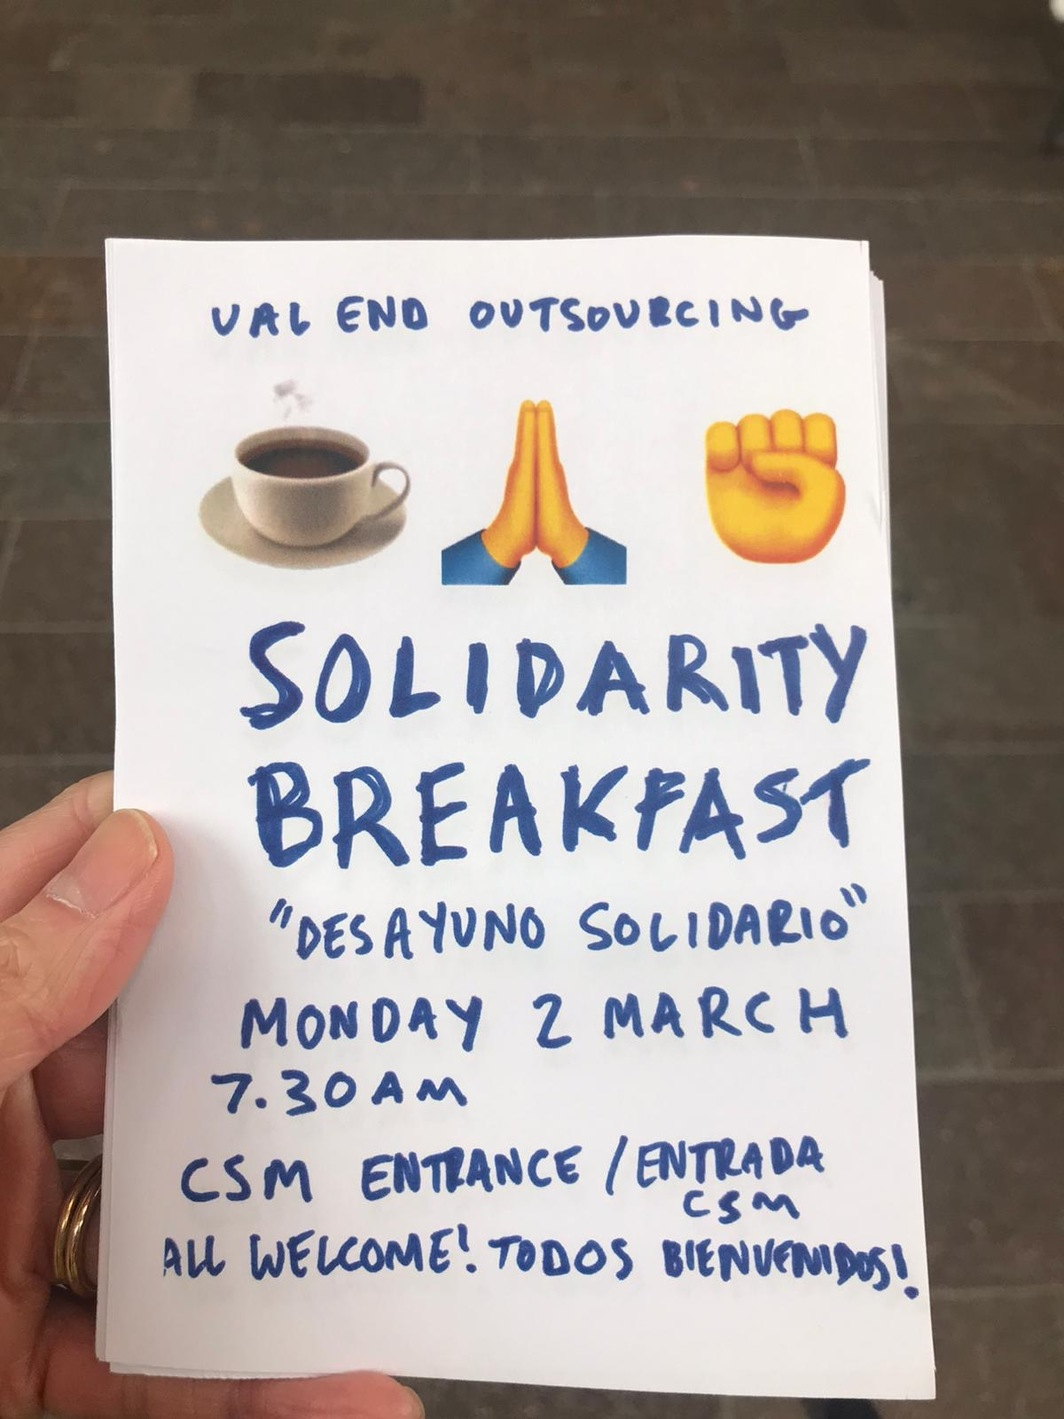 """Solidarity breakfast"" flier from Central Saint Martins, University of the Arts London."